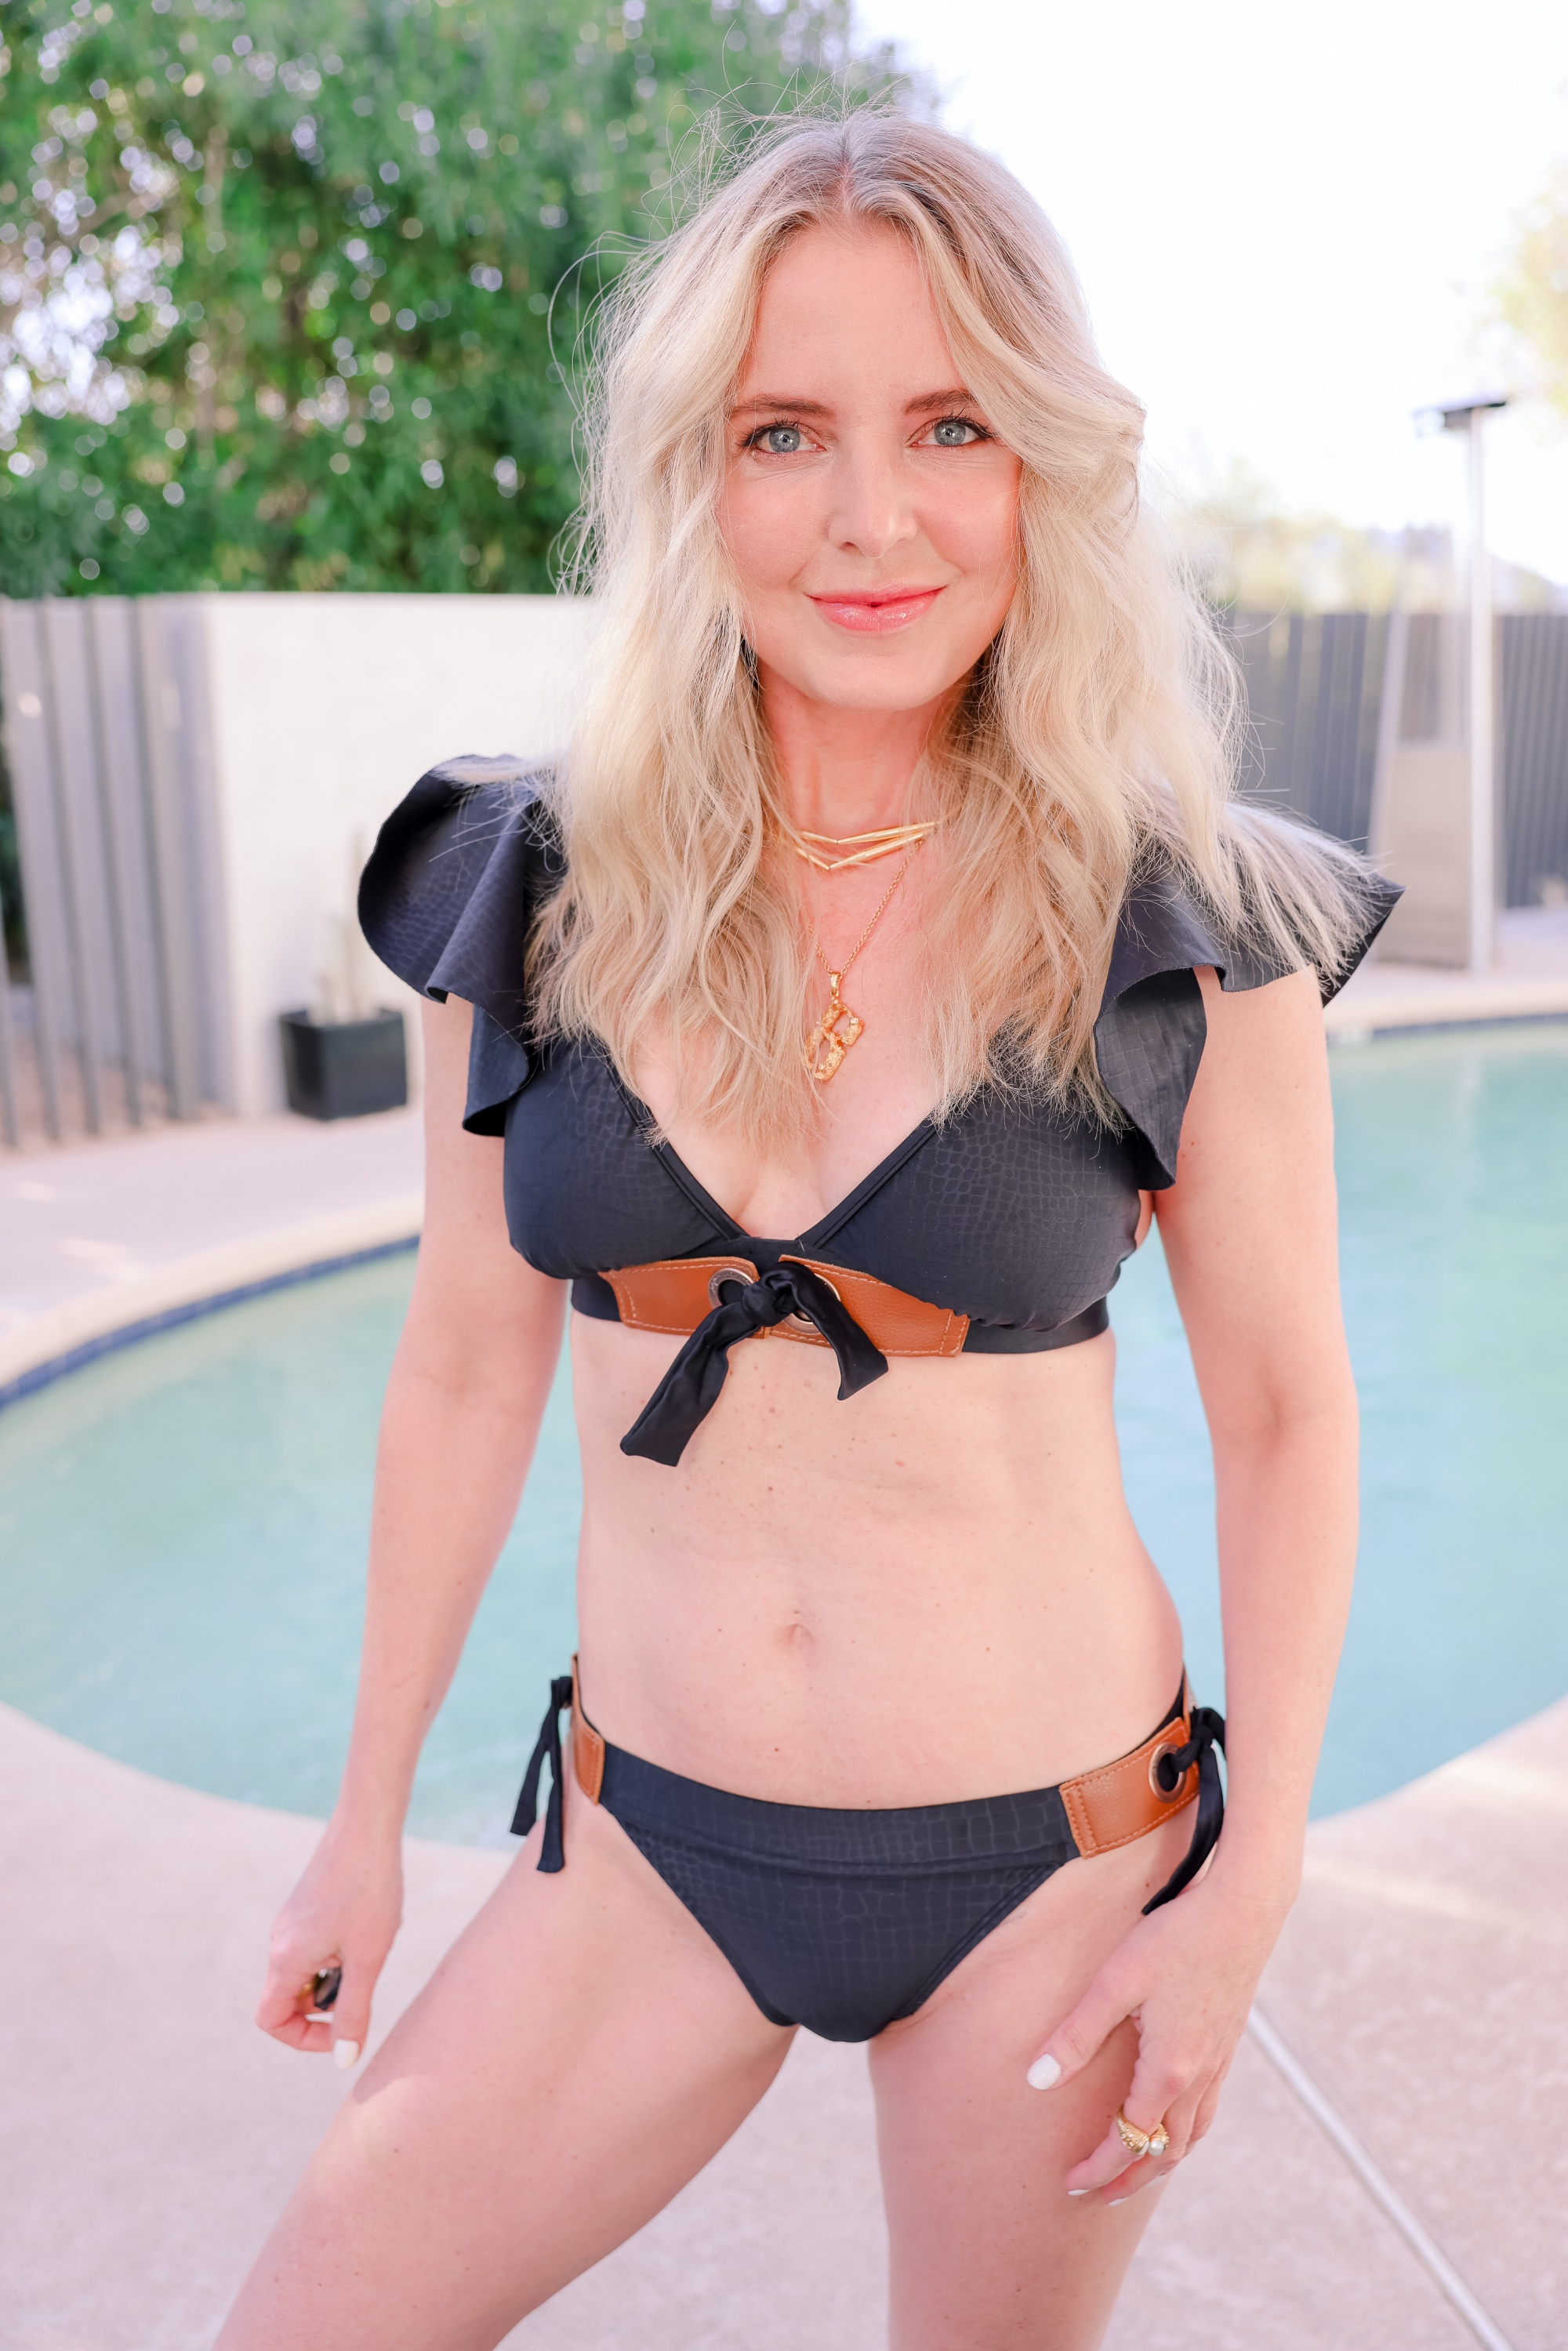 best bikinis over 40, black and leather agua de coco bikini, erin busbee, swimwear for ladies over 40, flattering swimsuits, best swimsuits for body type, swimwear over 40